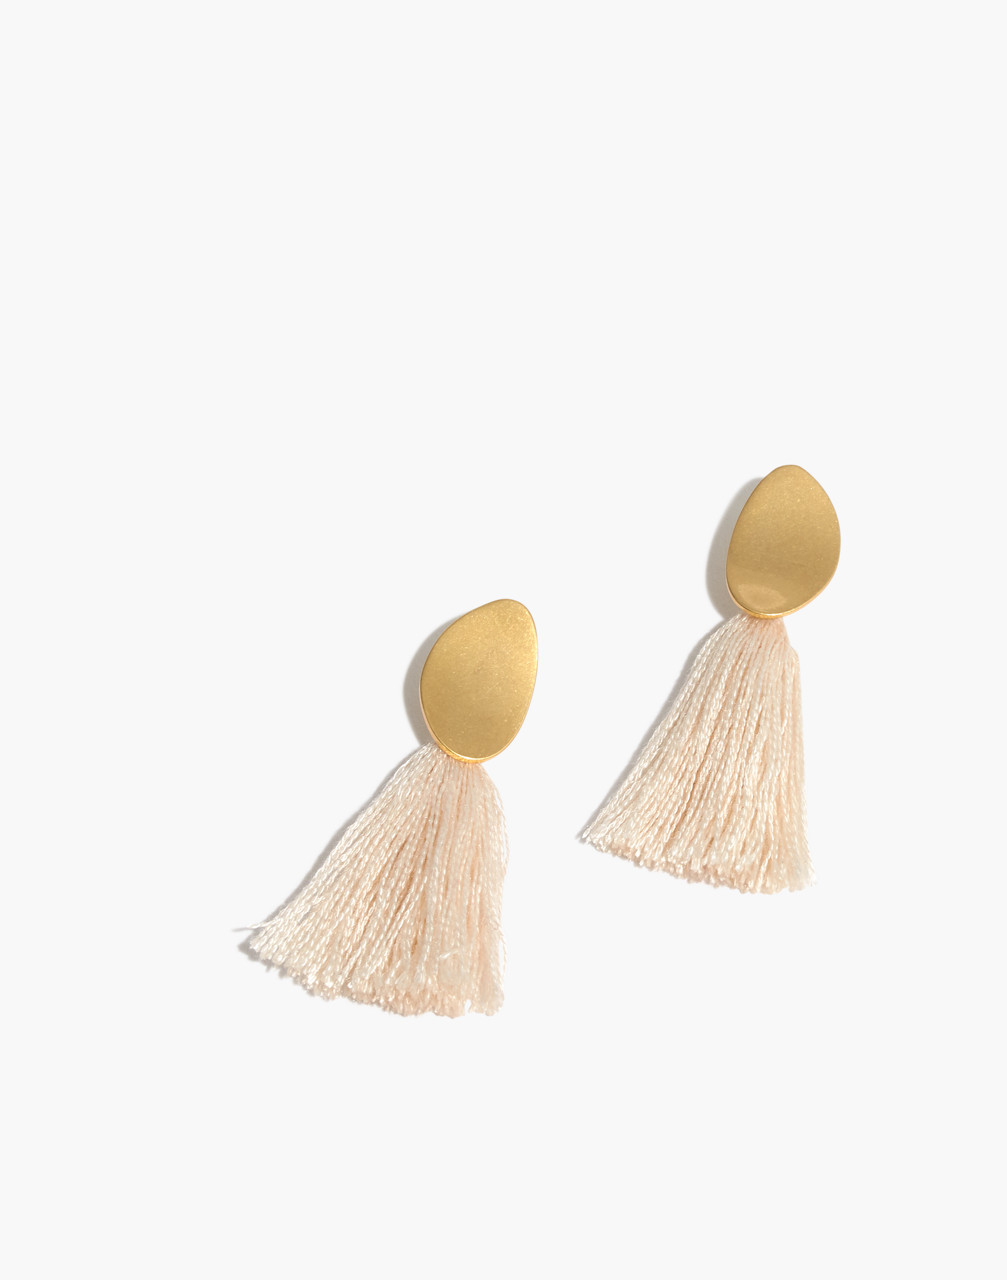 Tassel Statement Earrings in vintage linen image 1